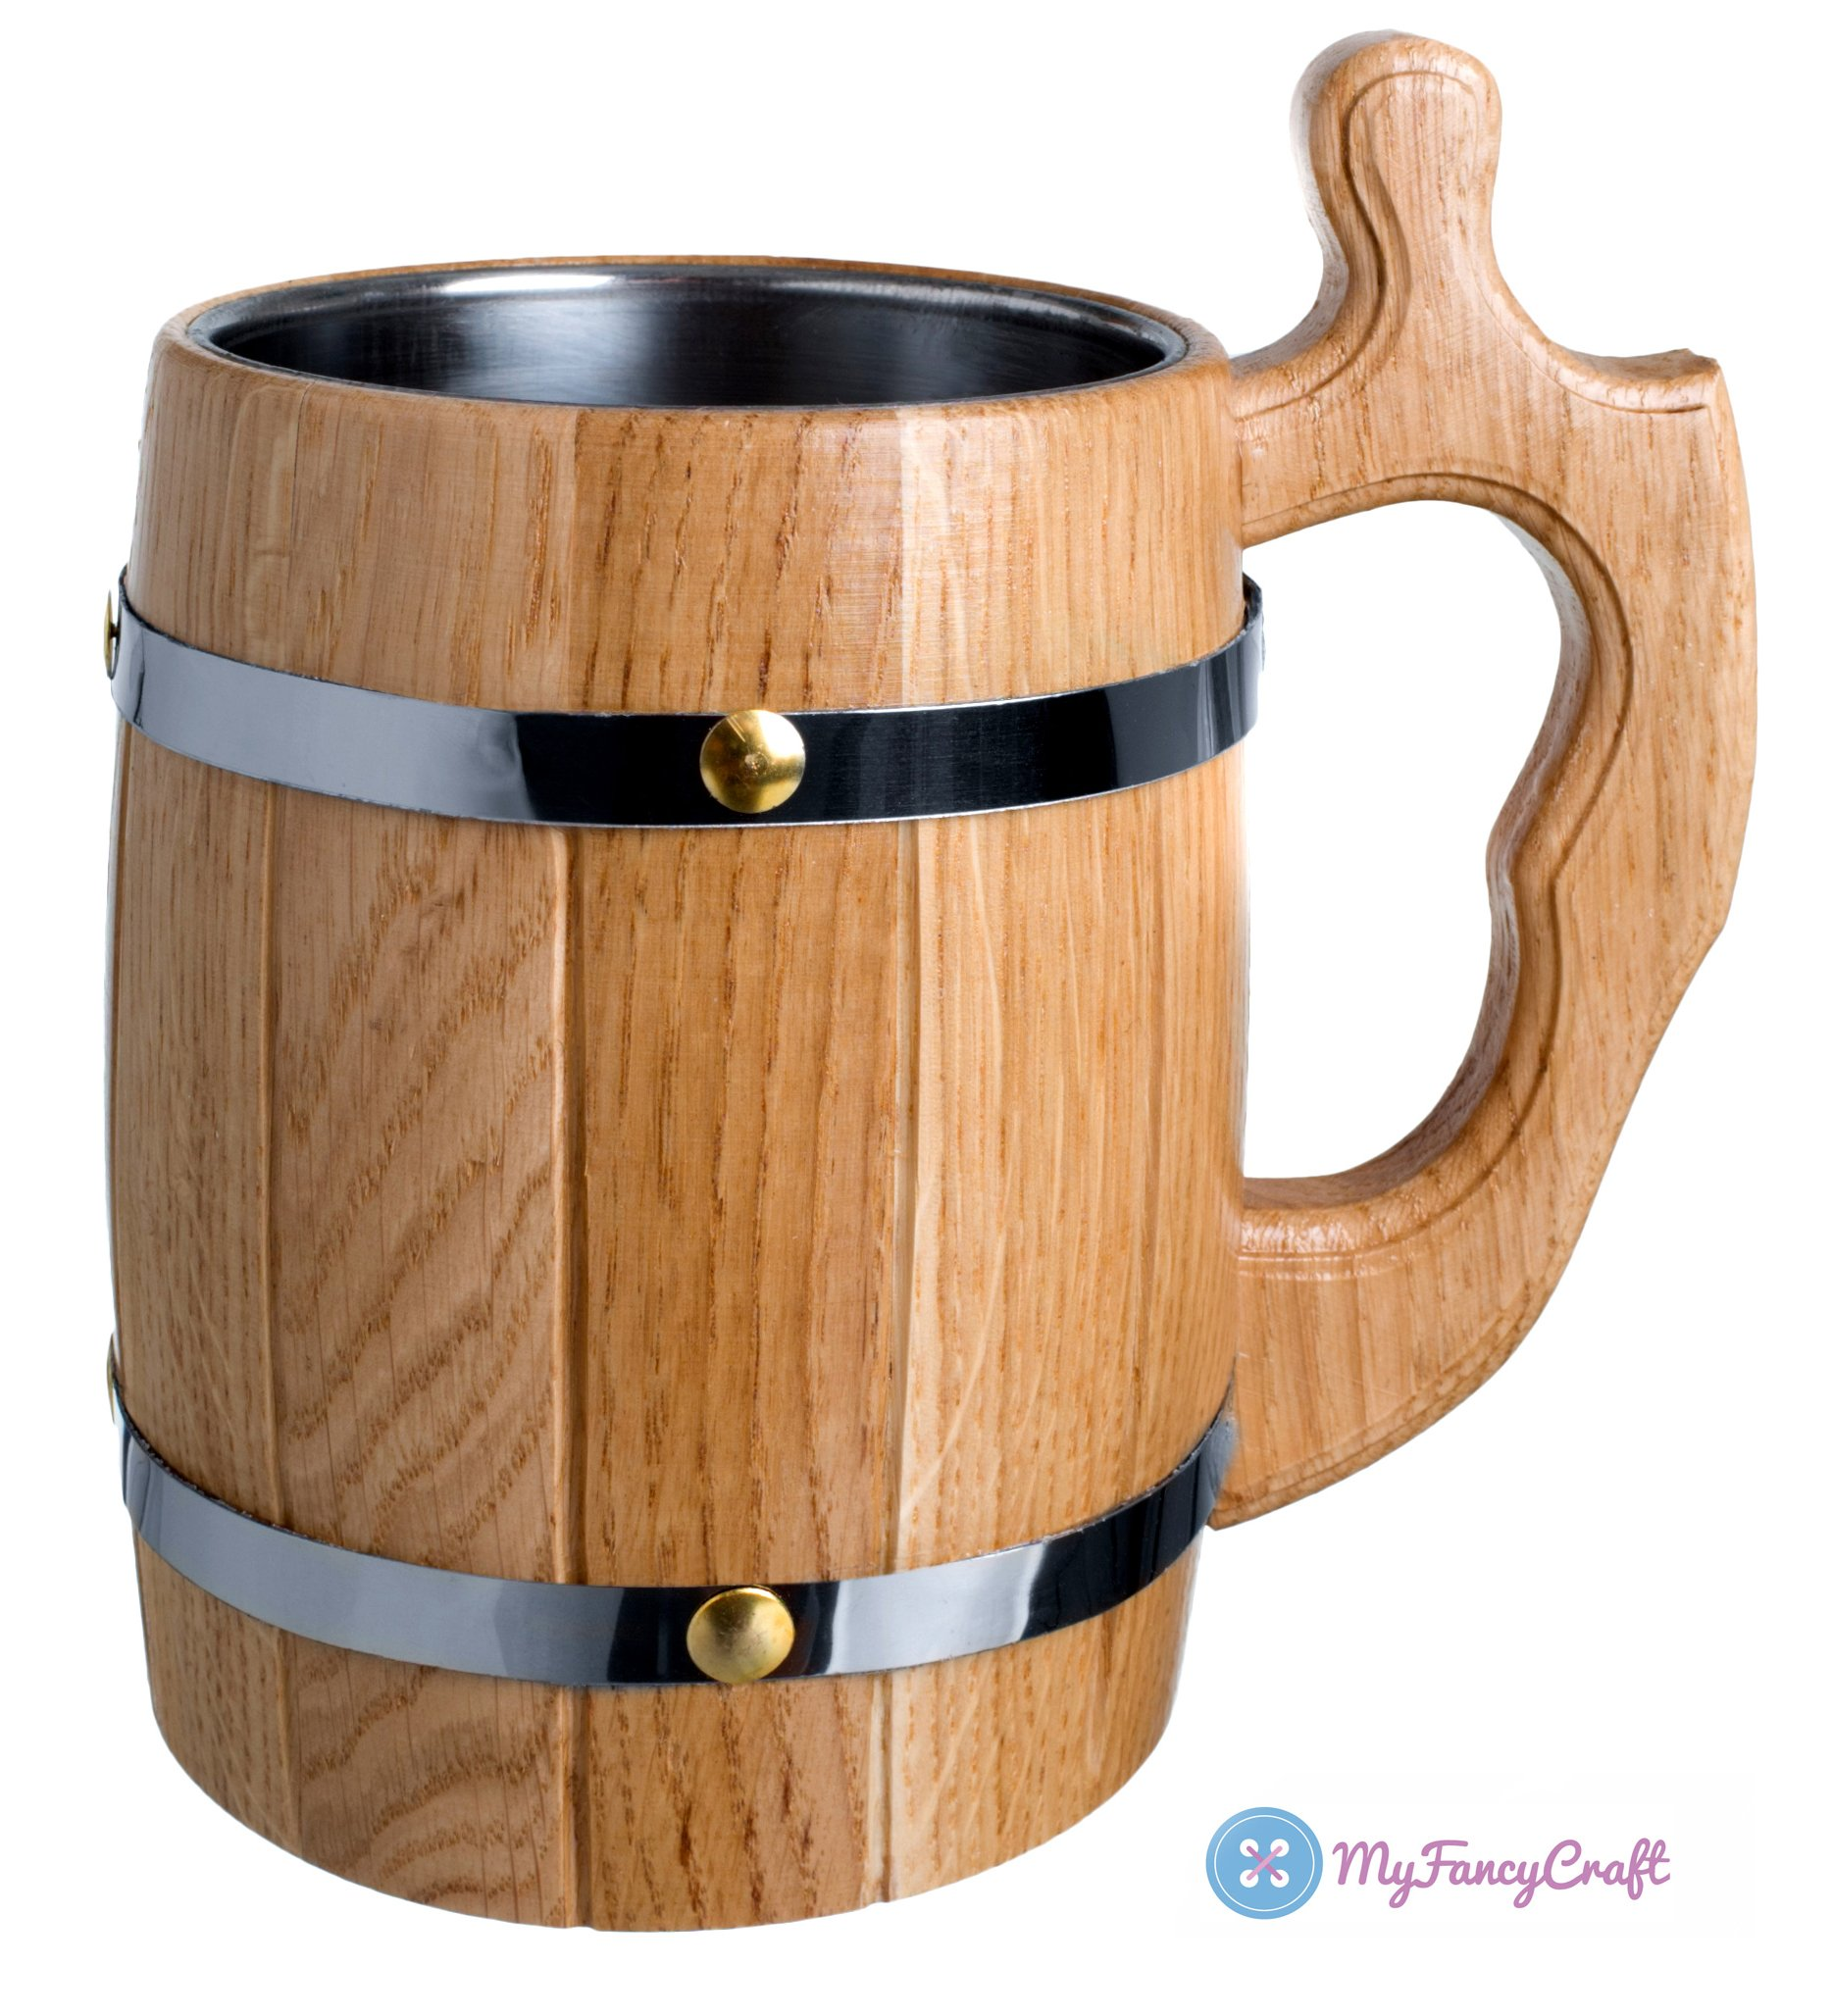 Handmade Beer Mug 0.6L 20oz Oak Wood Natural Eco-Friendly Gift Metal Line Beige